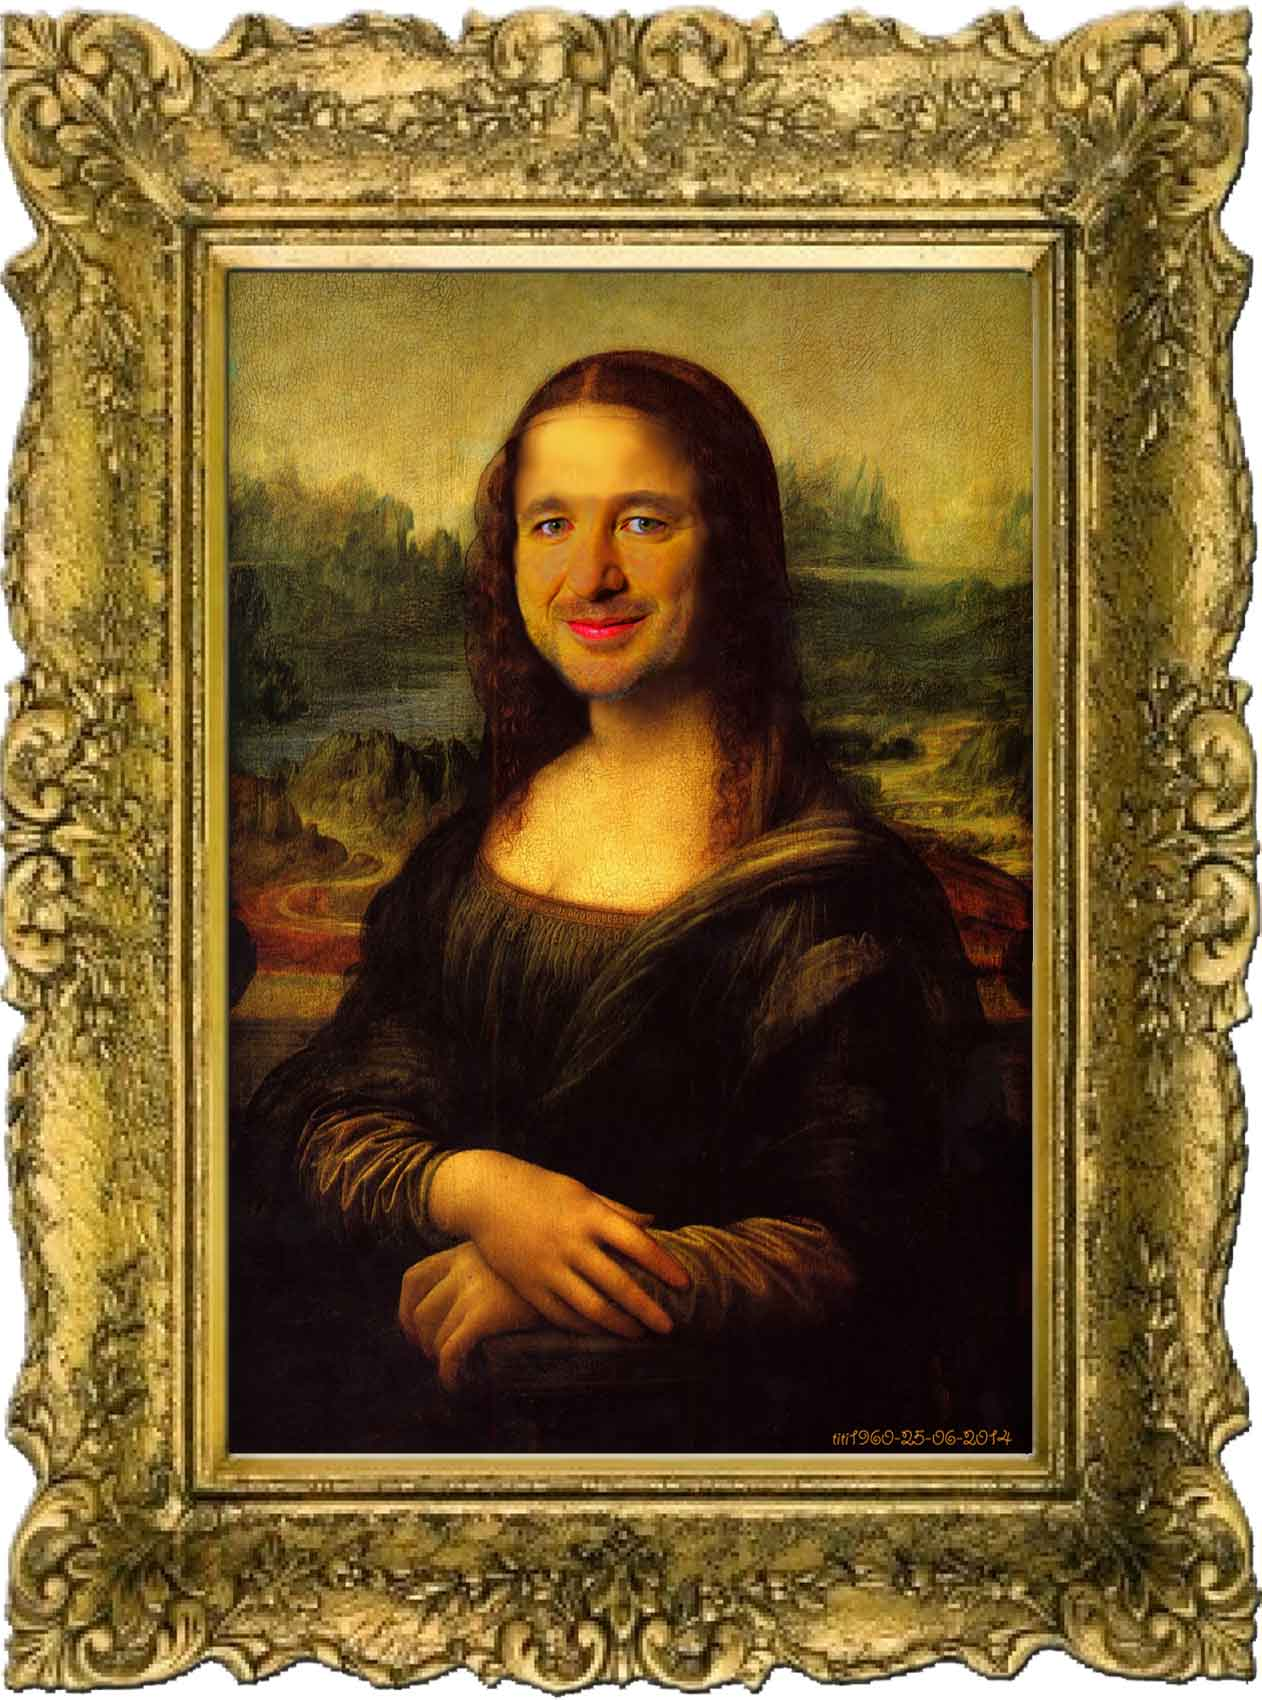 Bruno Guillon en Mona Lisa